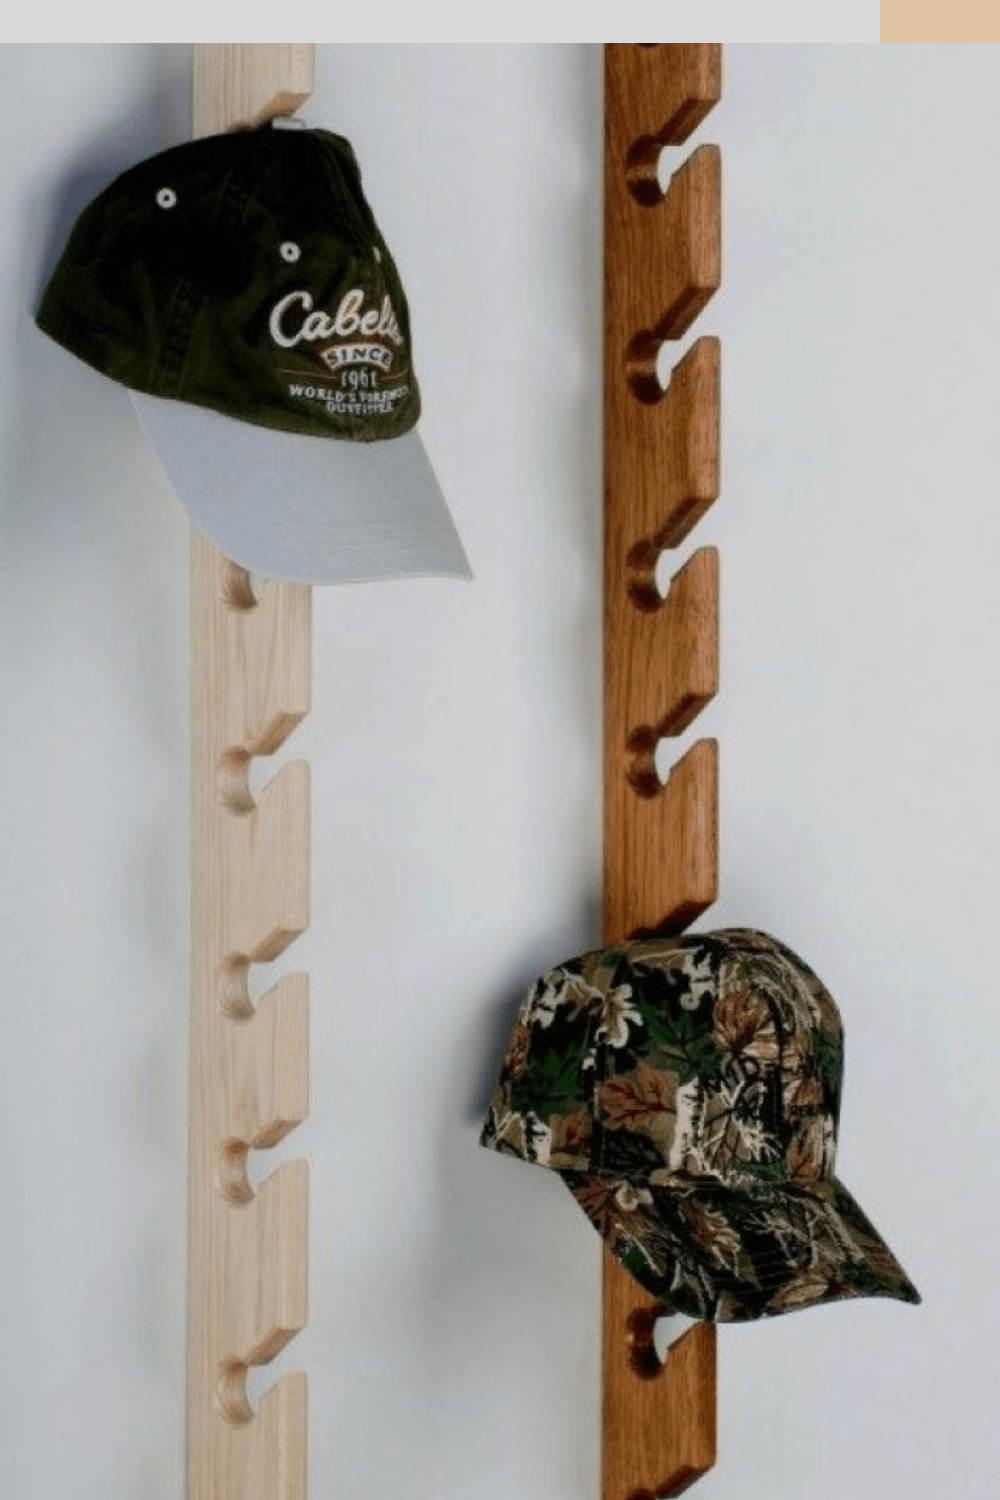 how to hang hats on wall without nails